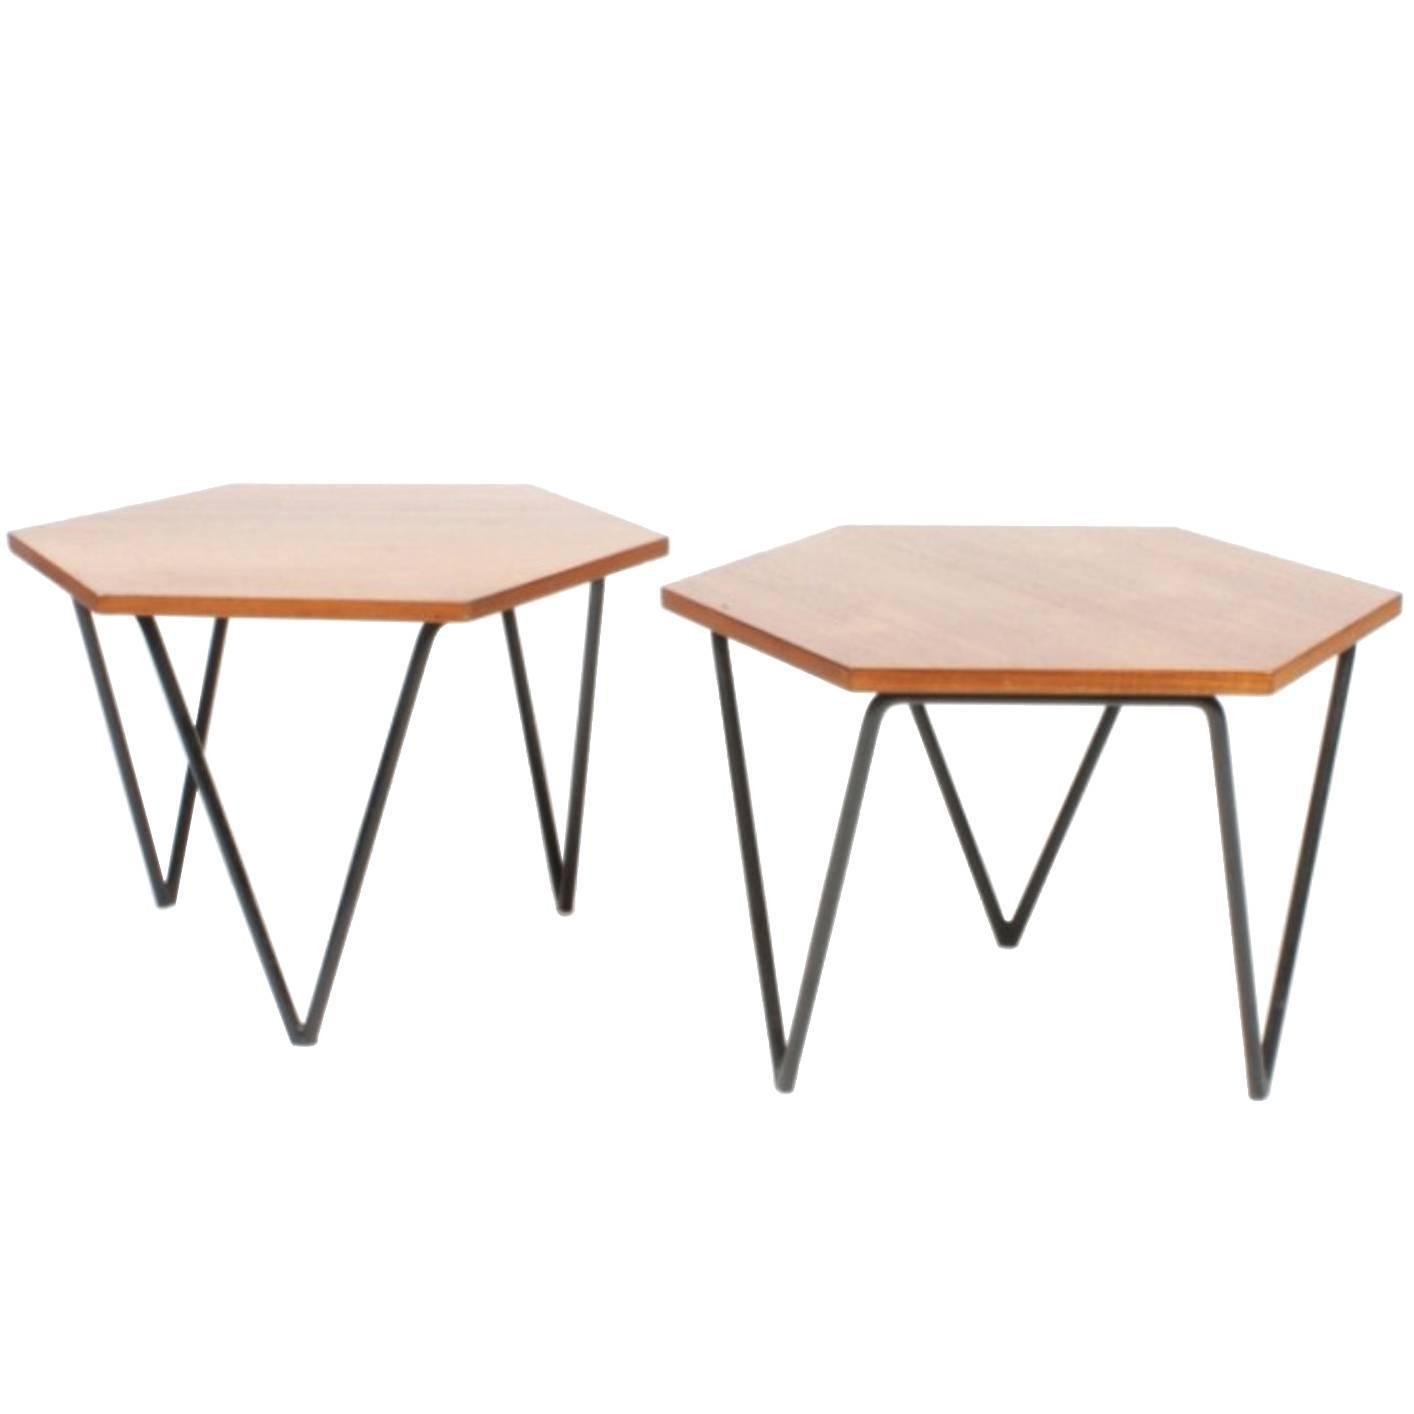 Pair of Elegant Side Tables by Gio Ponti Isa Edition 1950s For